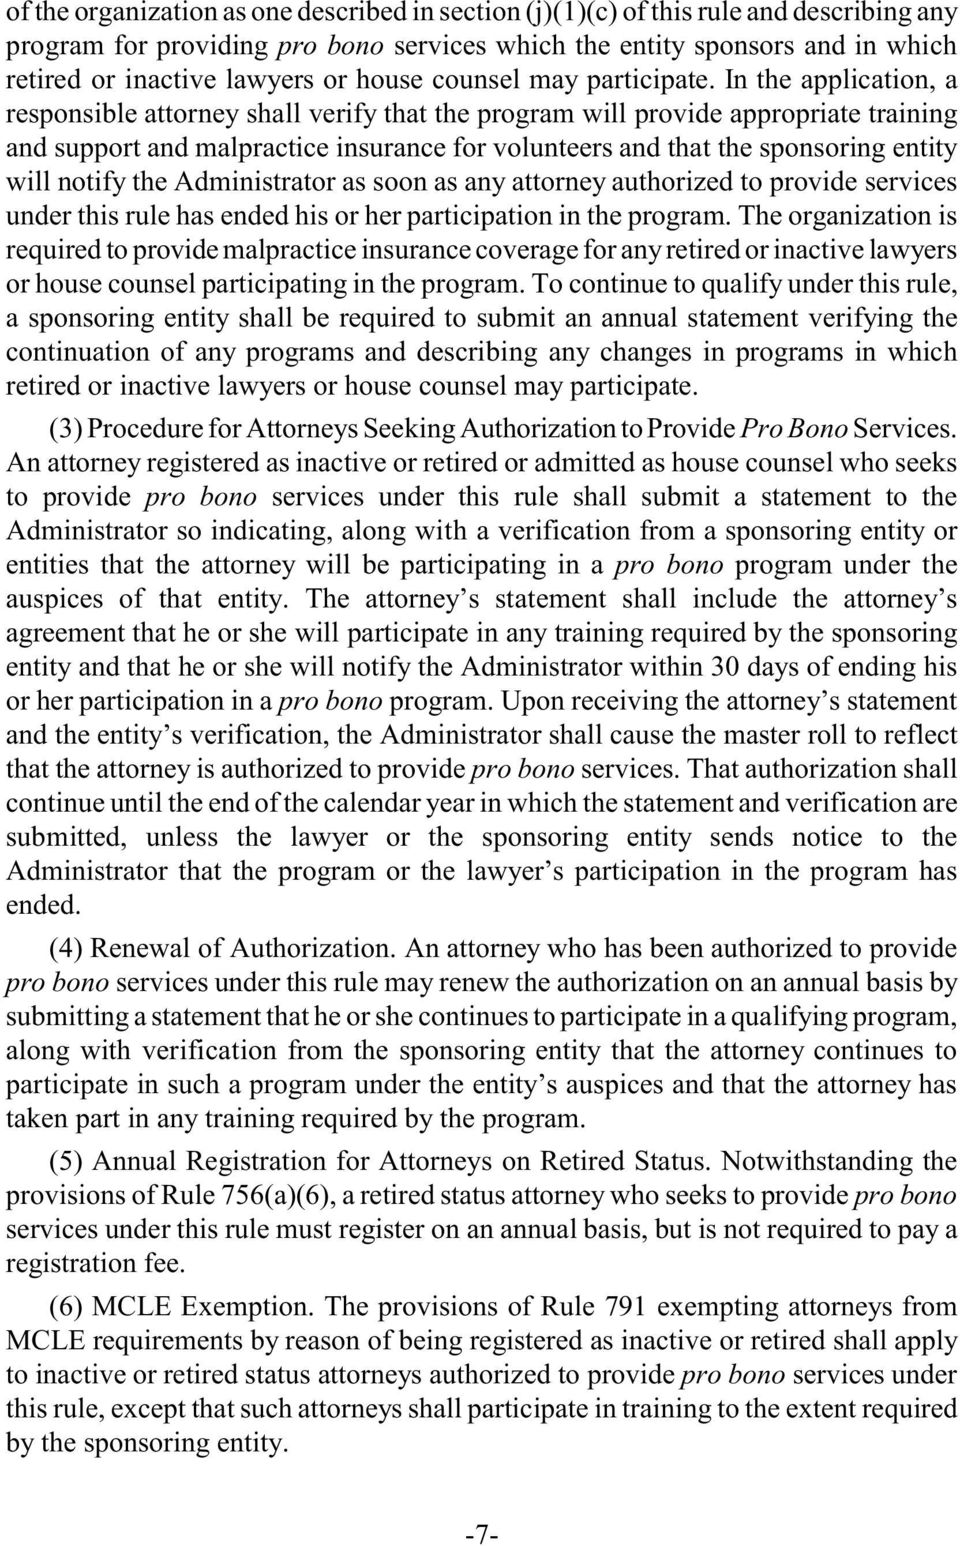 In the application, a responsible attorney shall verify that the program will provide appropriate training and support and malpractice insurance for volunteers and that the sponsoring entity will